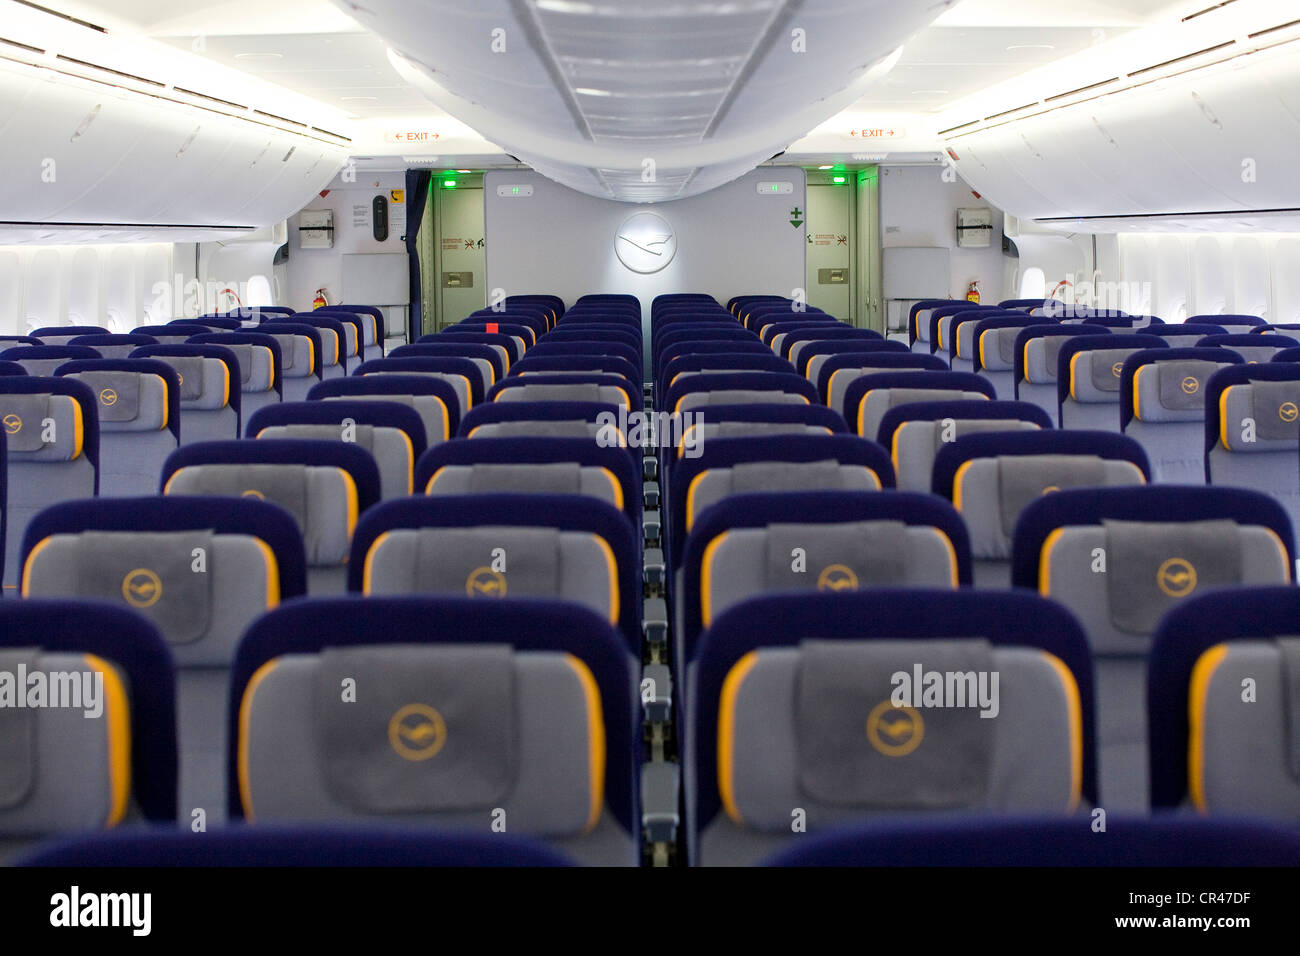 the economy class section of a lufthansa boeing 747 8 stock image